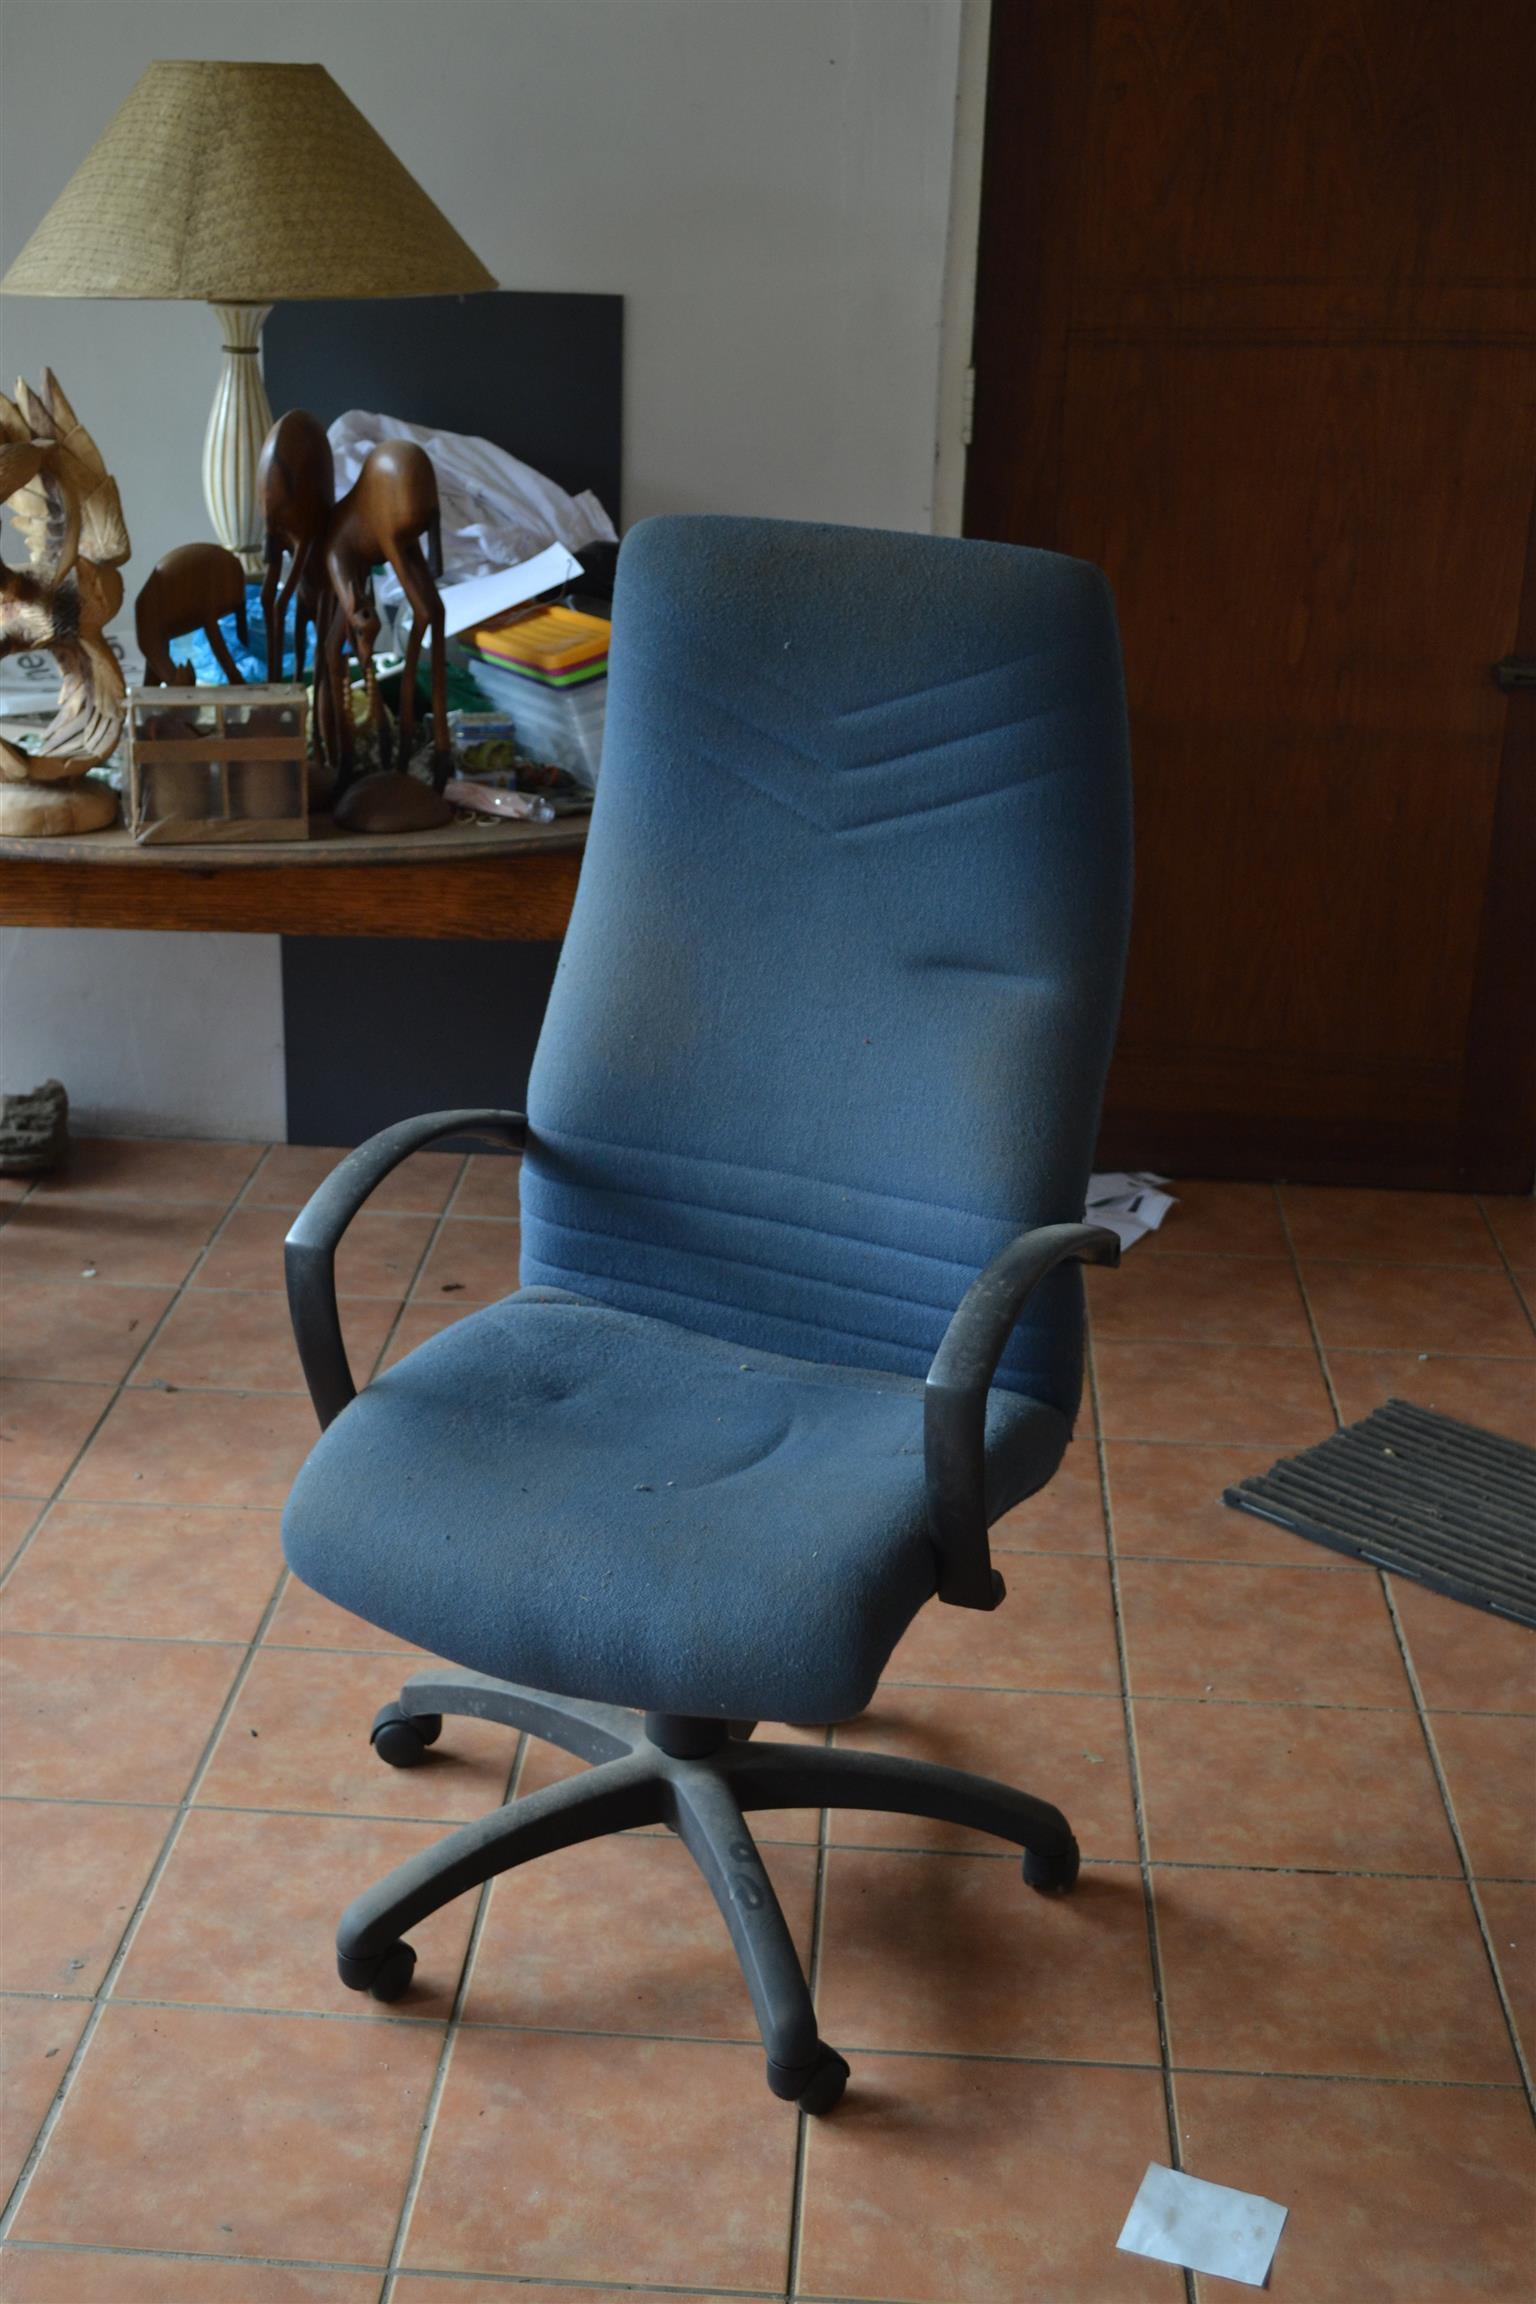 Luxurious chair on castors. Adjustable. Used but in good condition.